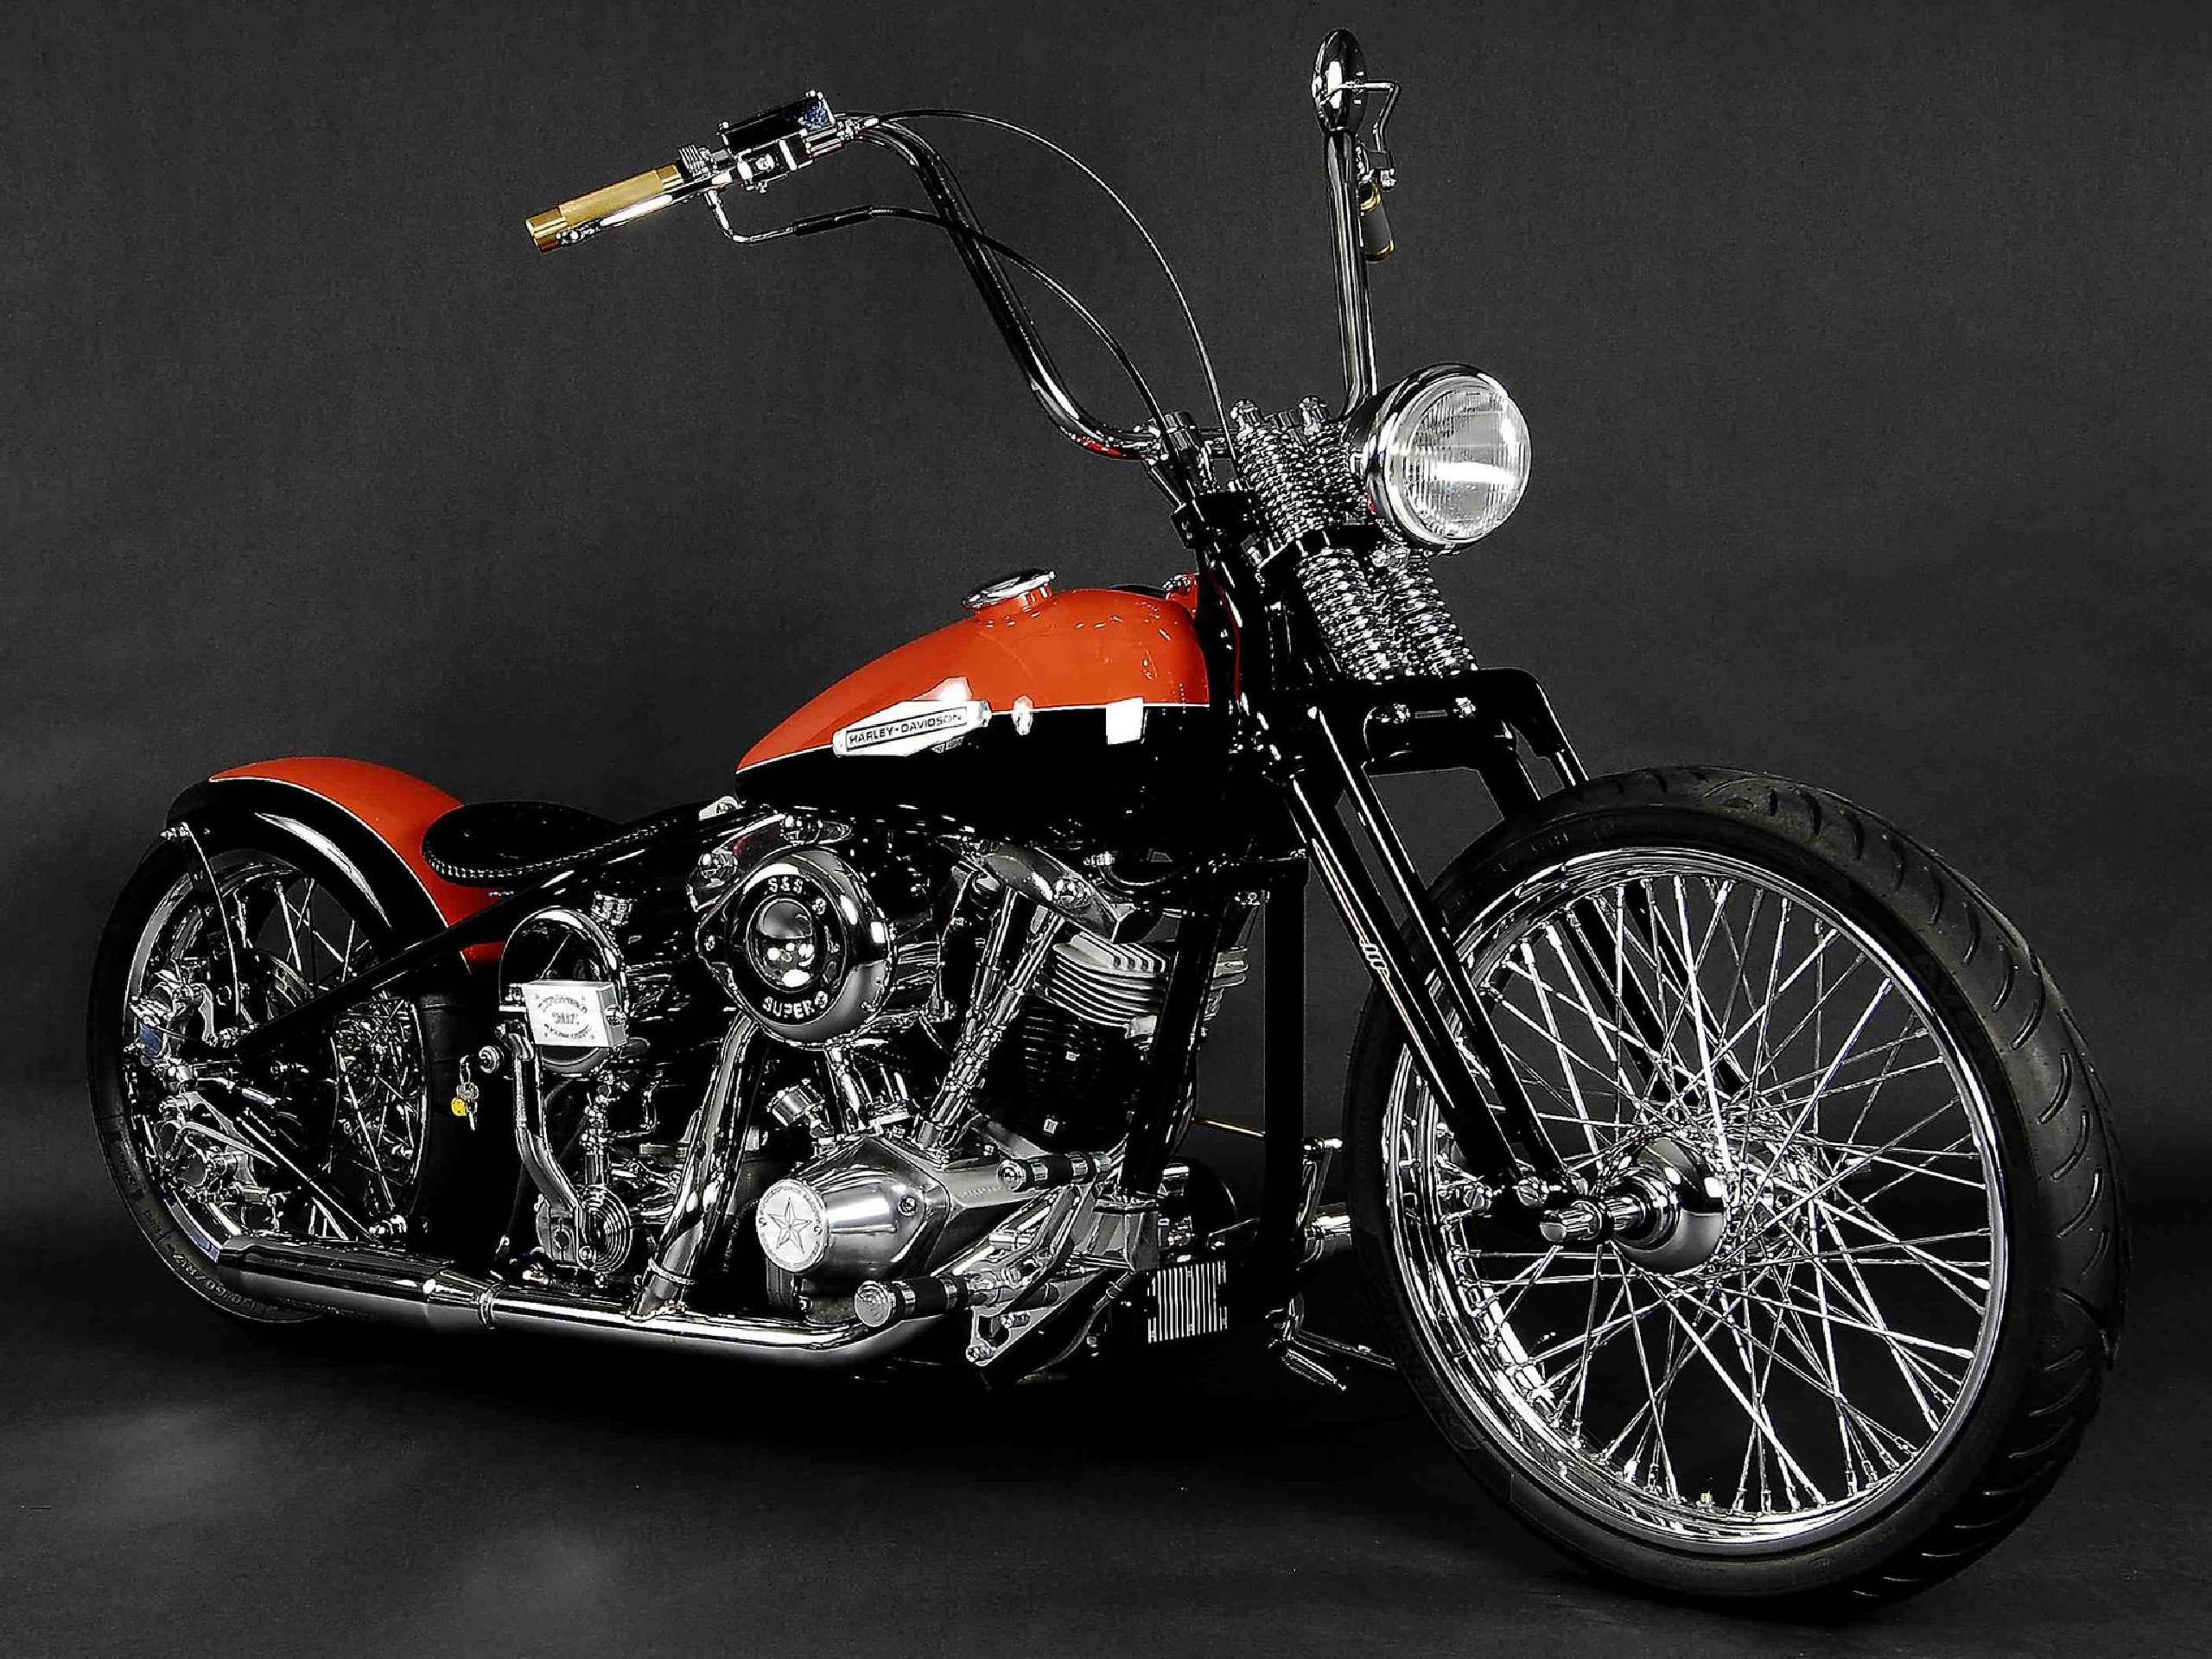 harley davidson hd wallpaper background image 2560x1920 id 319753 wallpaper abyss. Black Bedroom Furniture Sets. Home Design Ideas